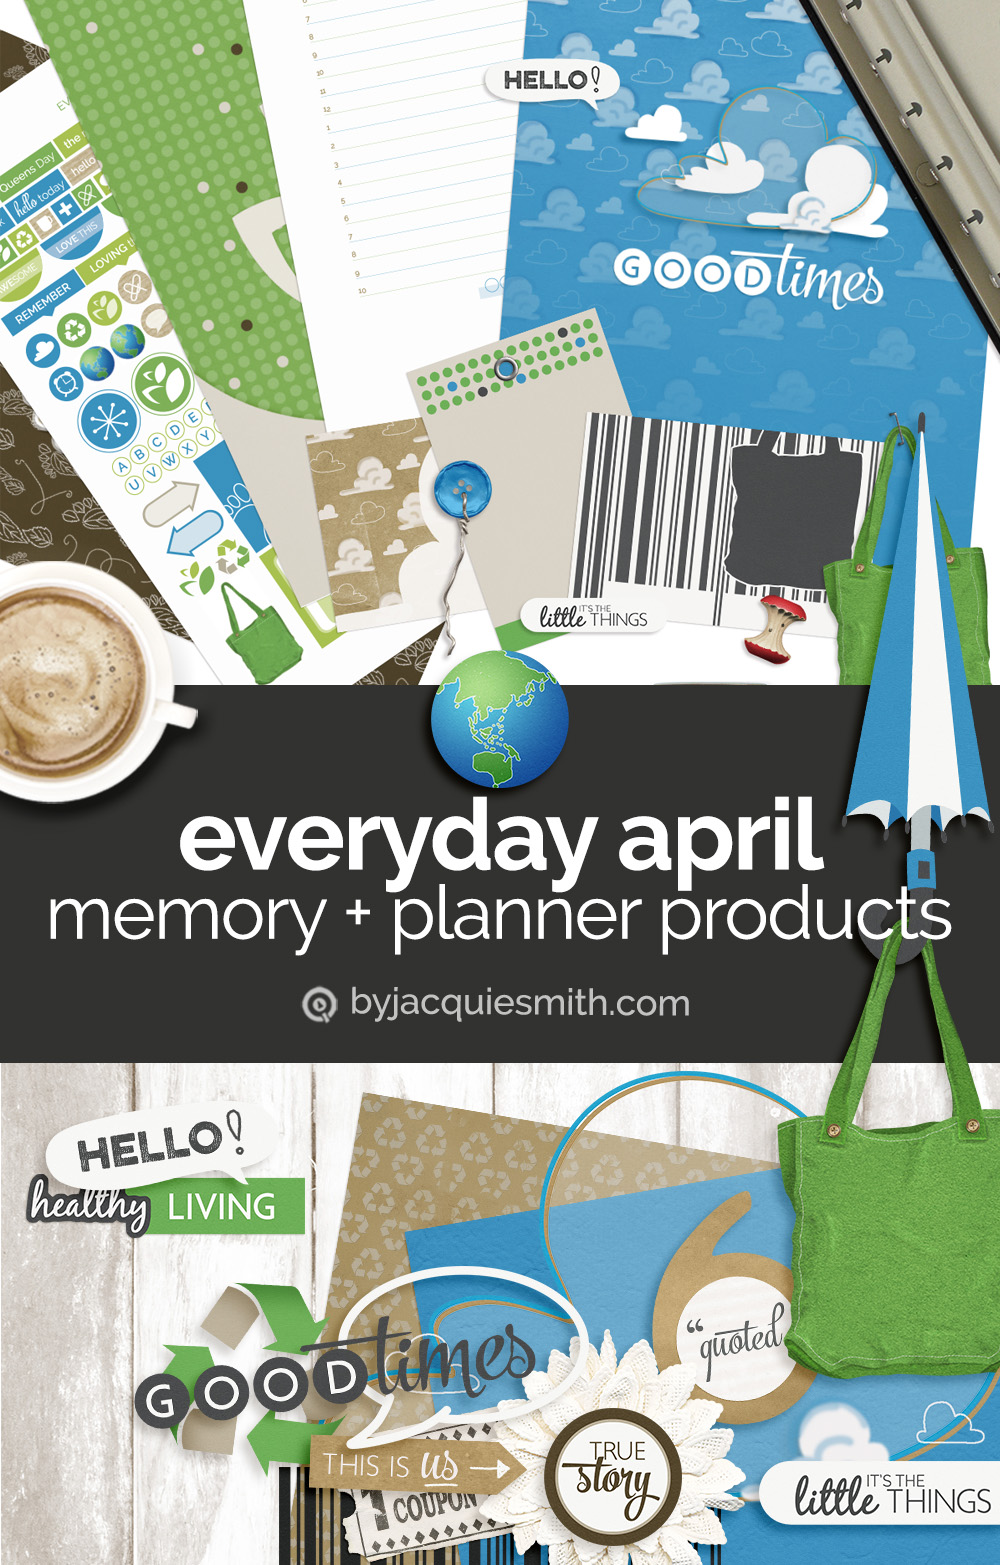 Everyday April memory keeping and planner products at byjacquiesmith.com